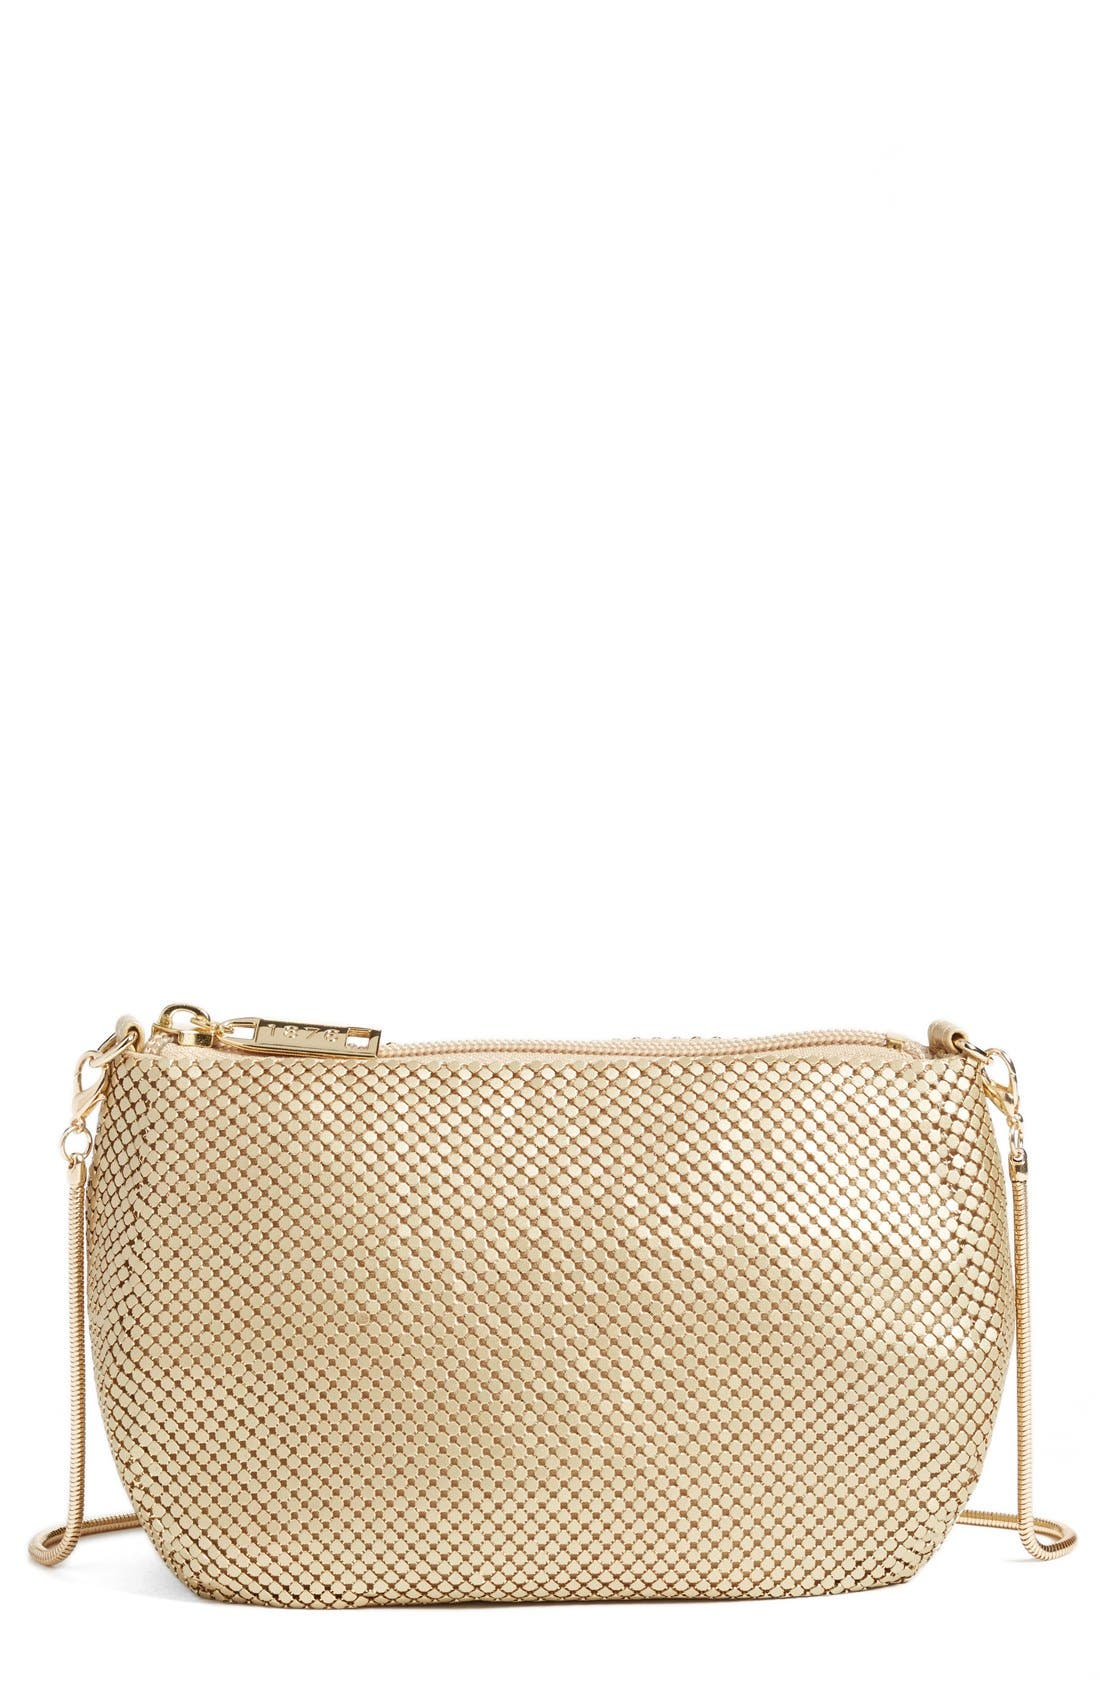 Whiting & Davis 'Matte' Mesh Crossbody Bag